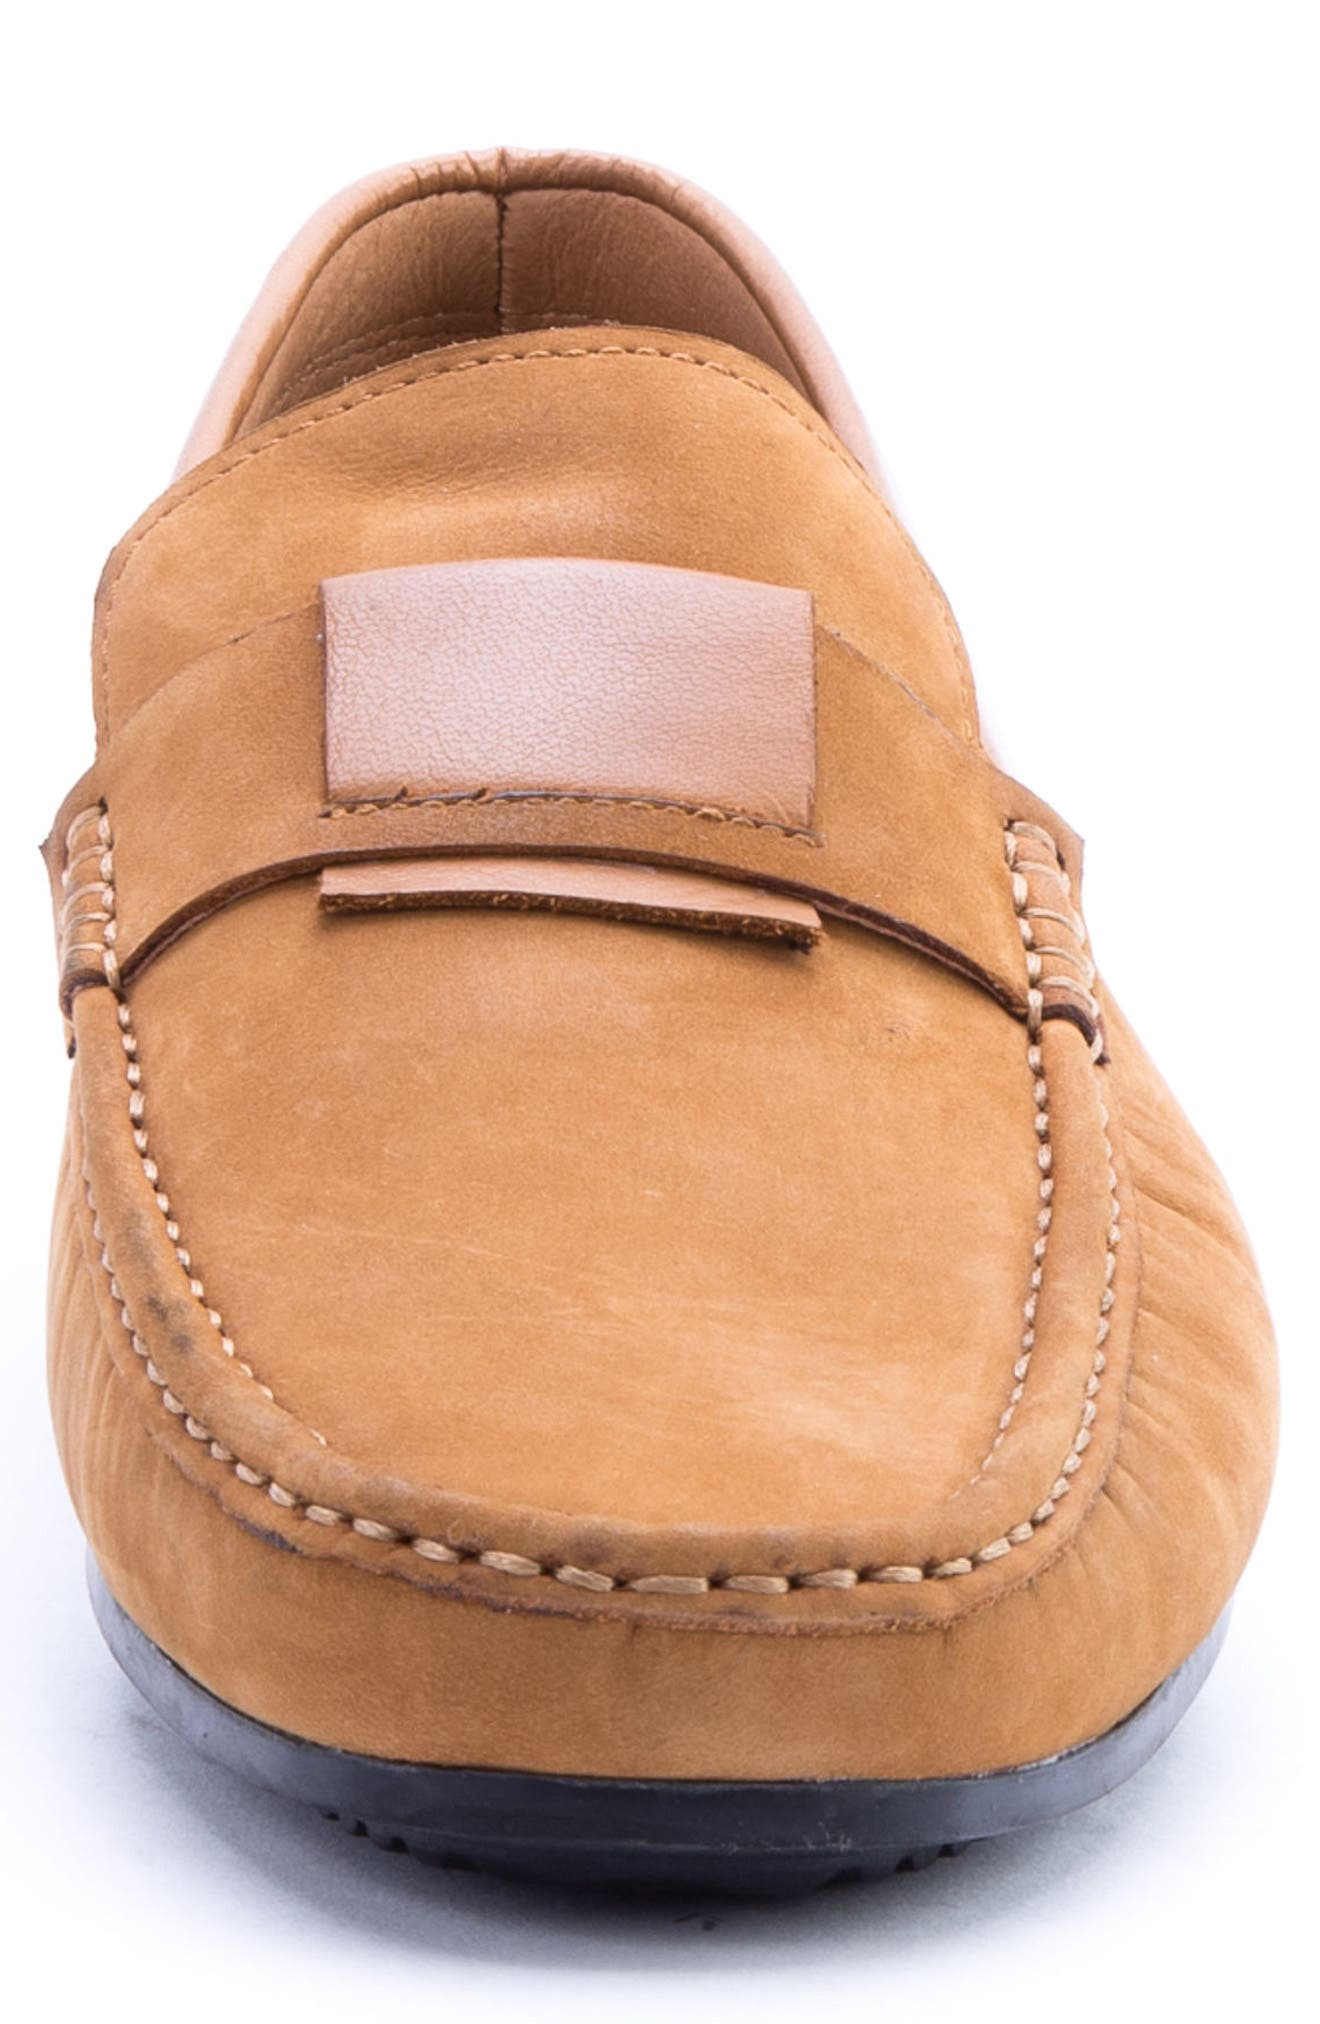 Seurat Driving Loafer,                             Alternate thumbnail 4, color,                             COGNAC SUEDE/ LEATHER